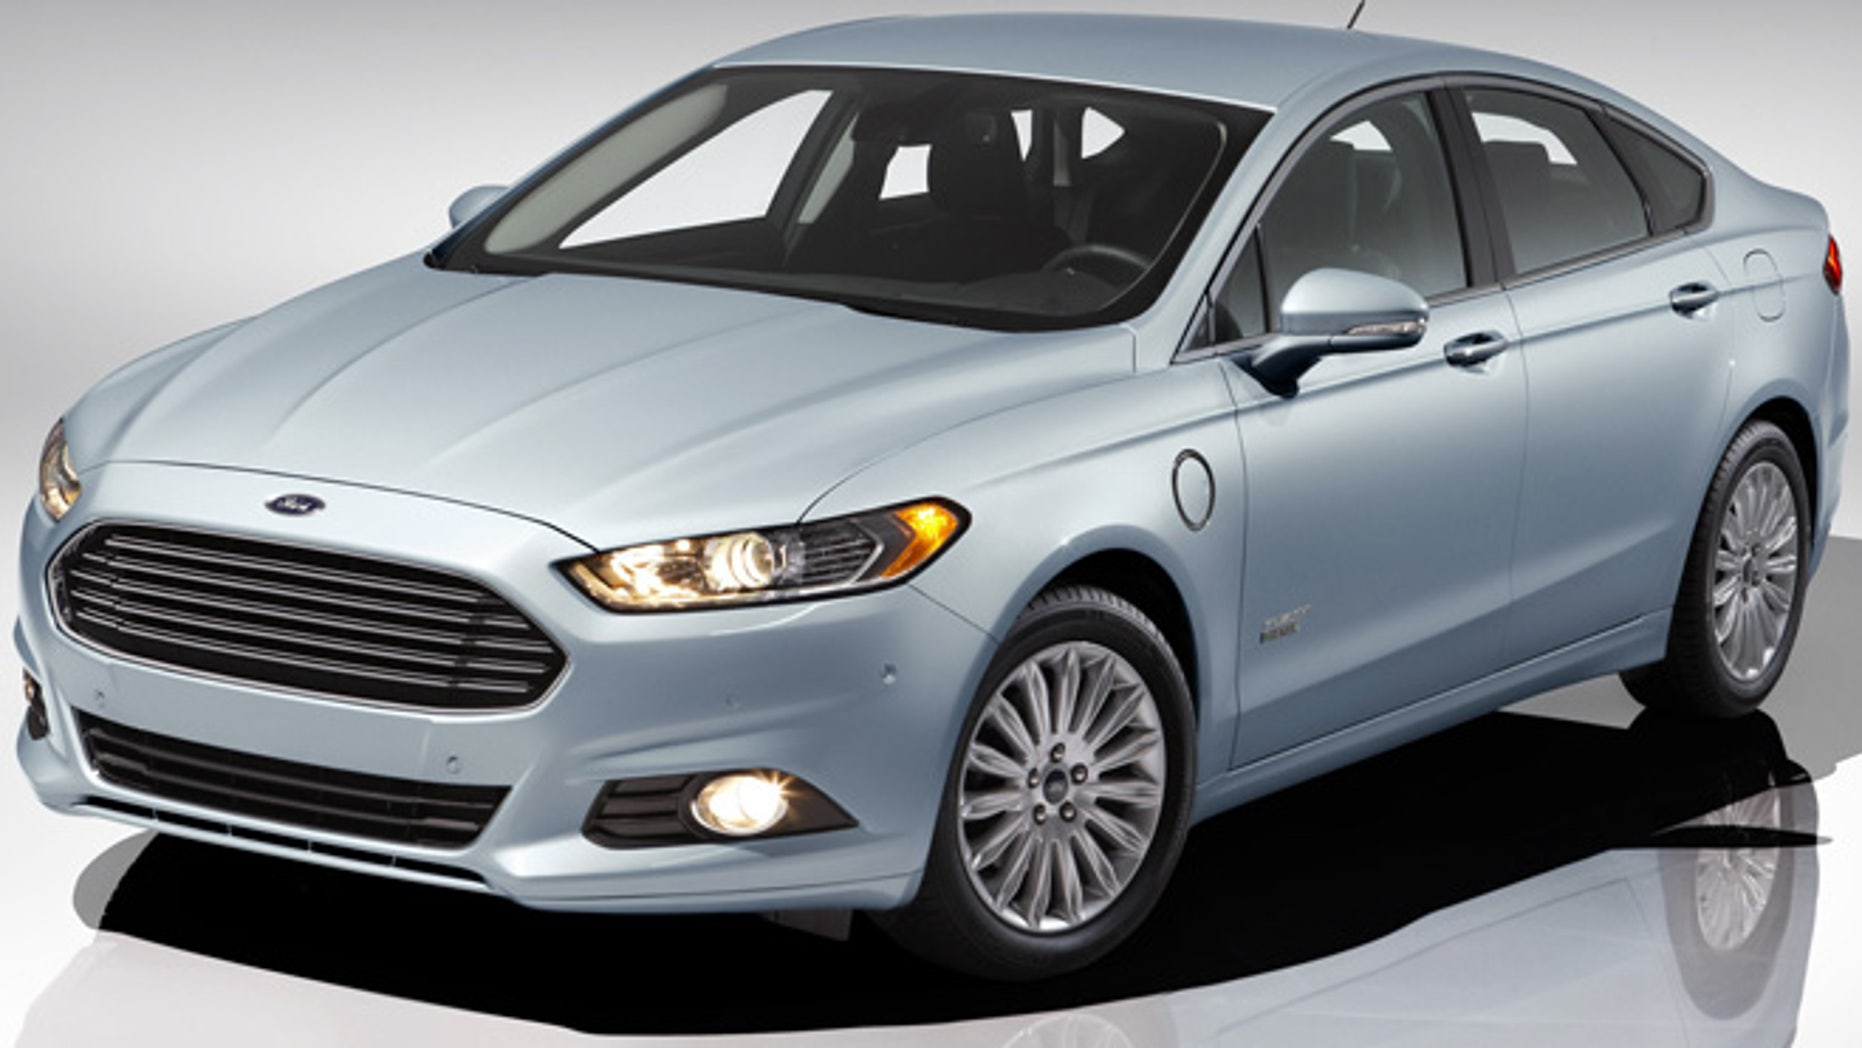 Ford fusion energi rated at 100 mpg